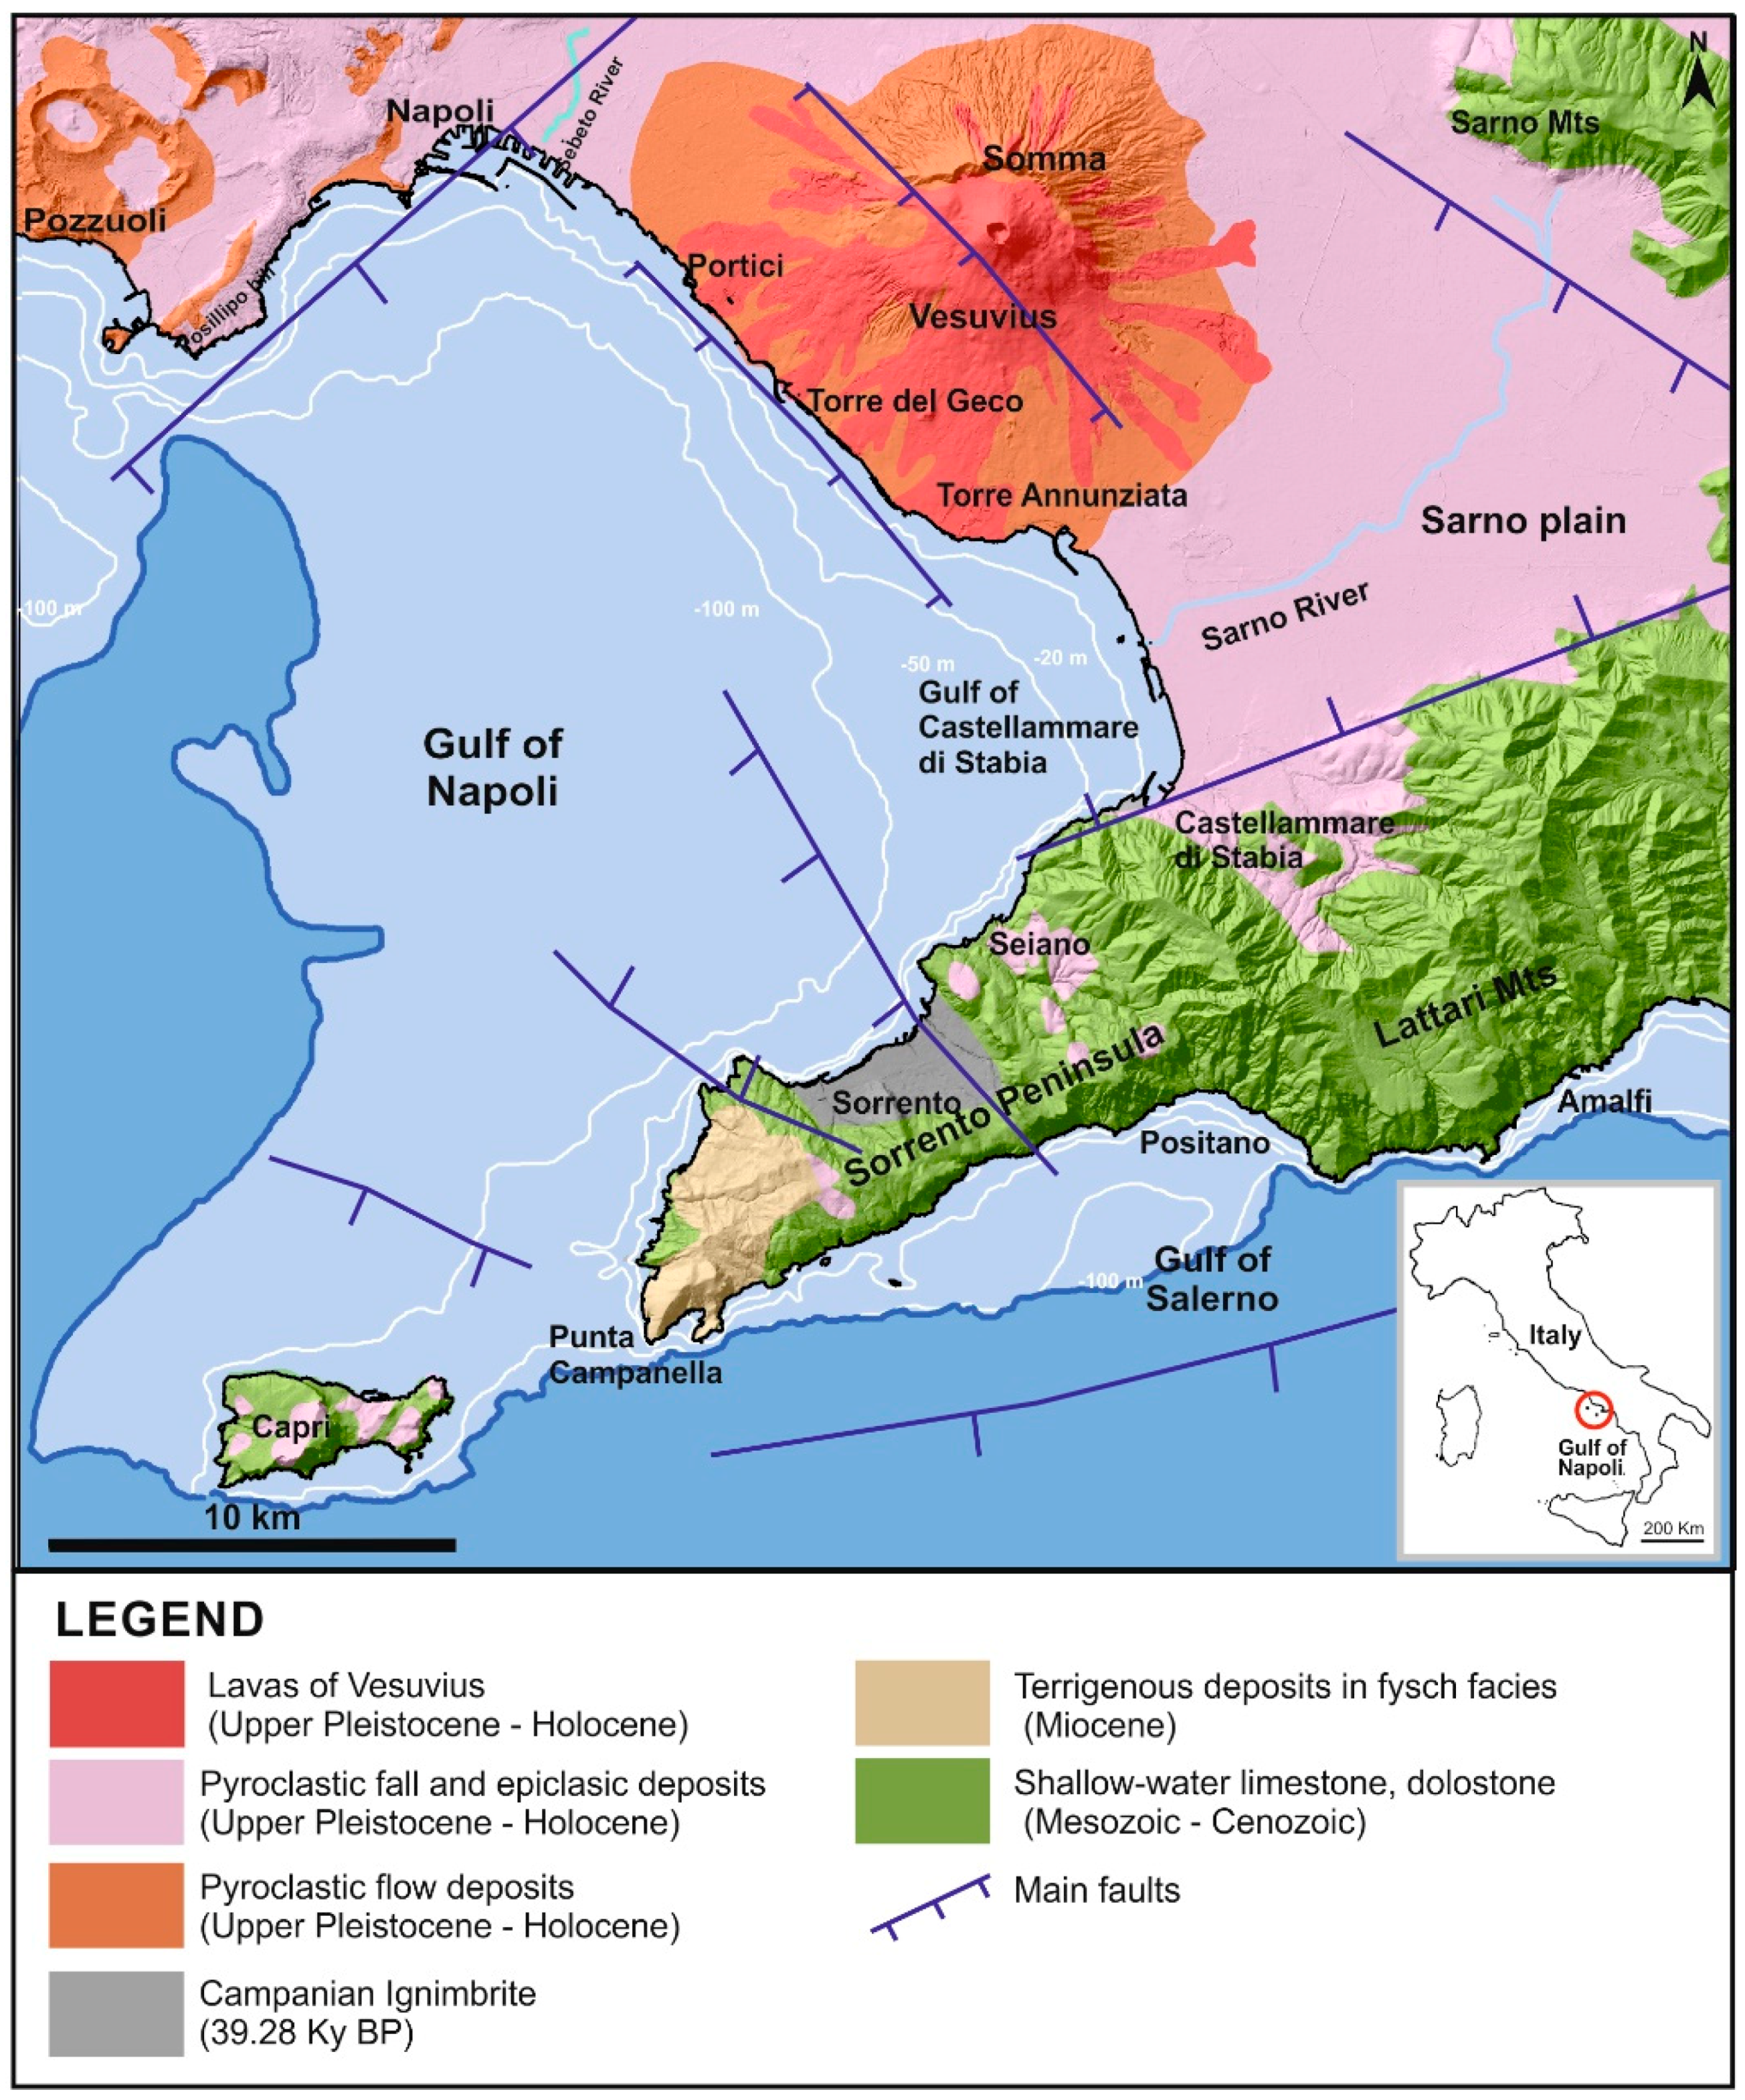 Geosciences Free Full Text Beach Erosion In The Gulf Of Castellammare Di Stabia In Response To The Trapping Of Longshore Drifting Sediments Of The Gulf Of Napoli Southern Italy Html